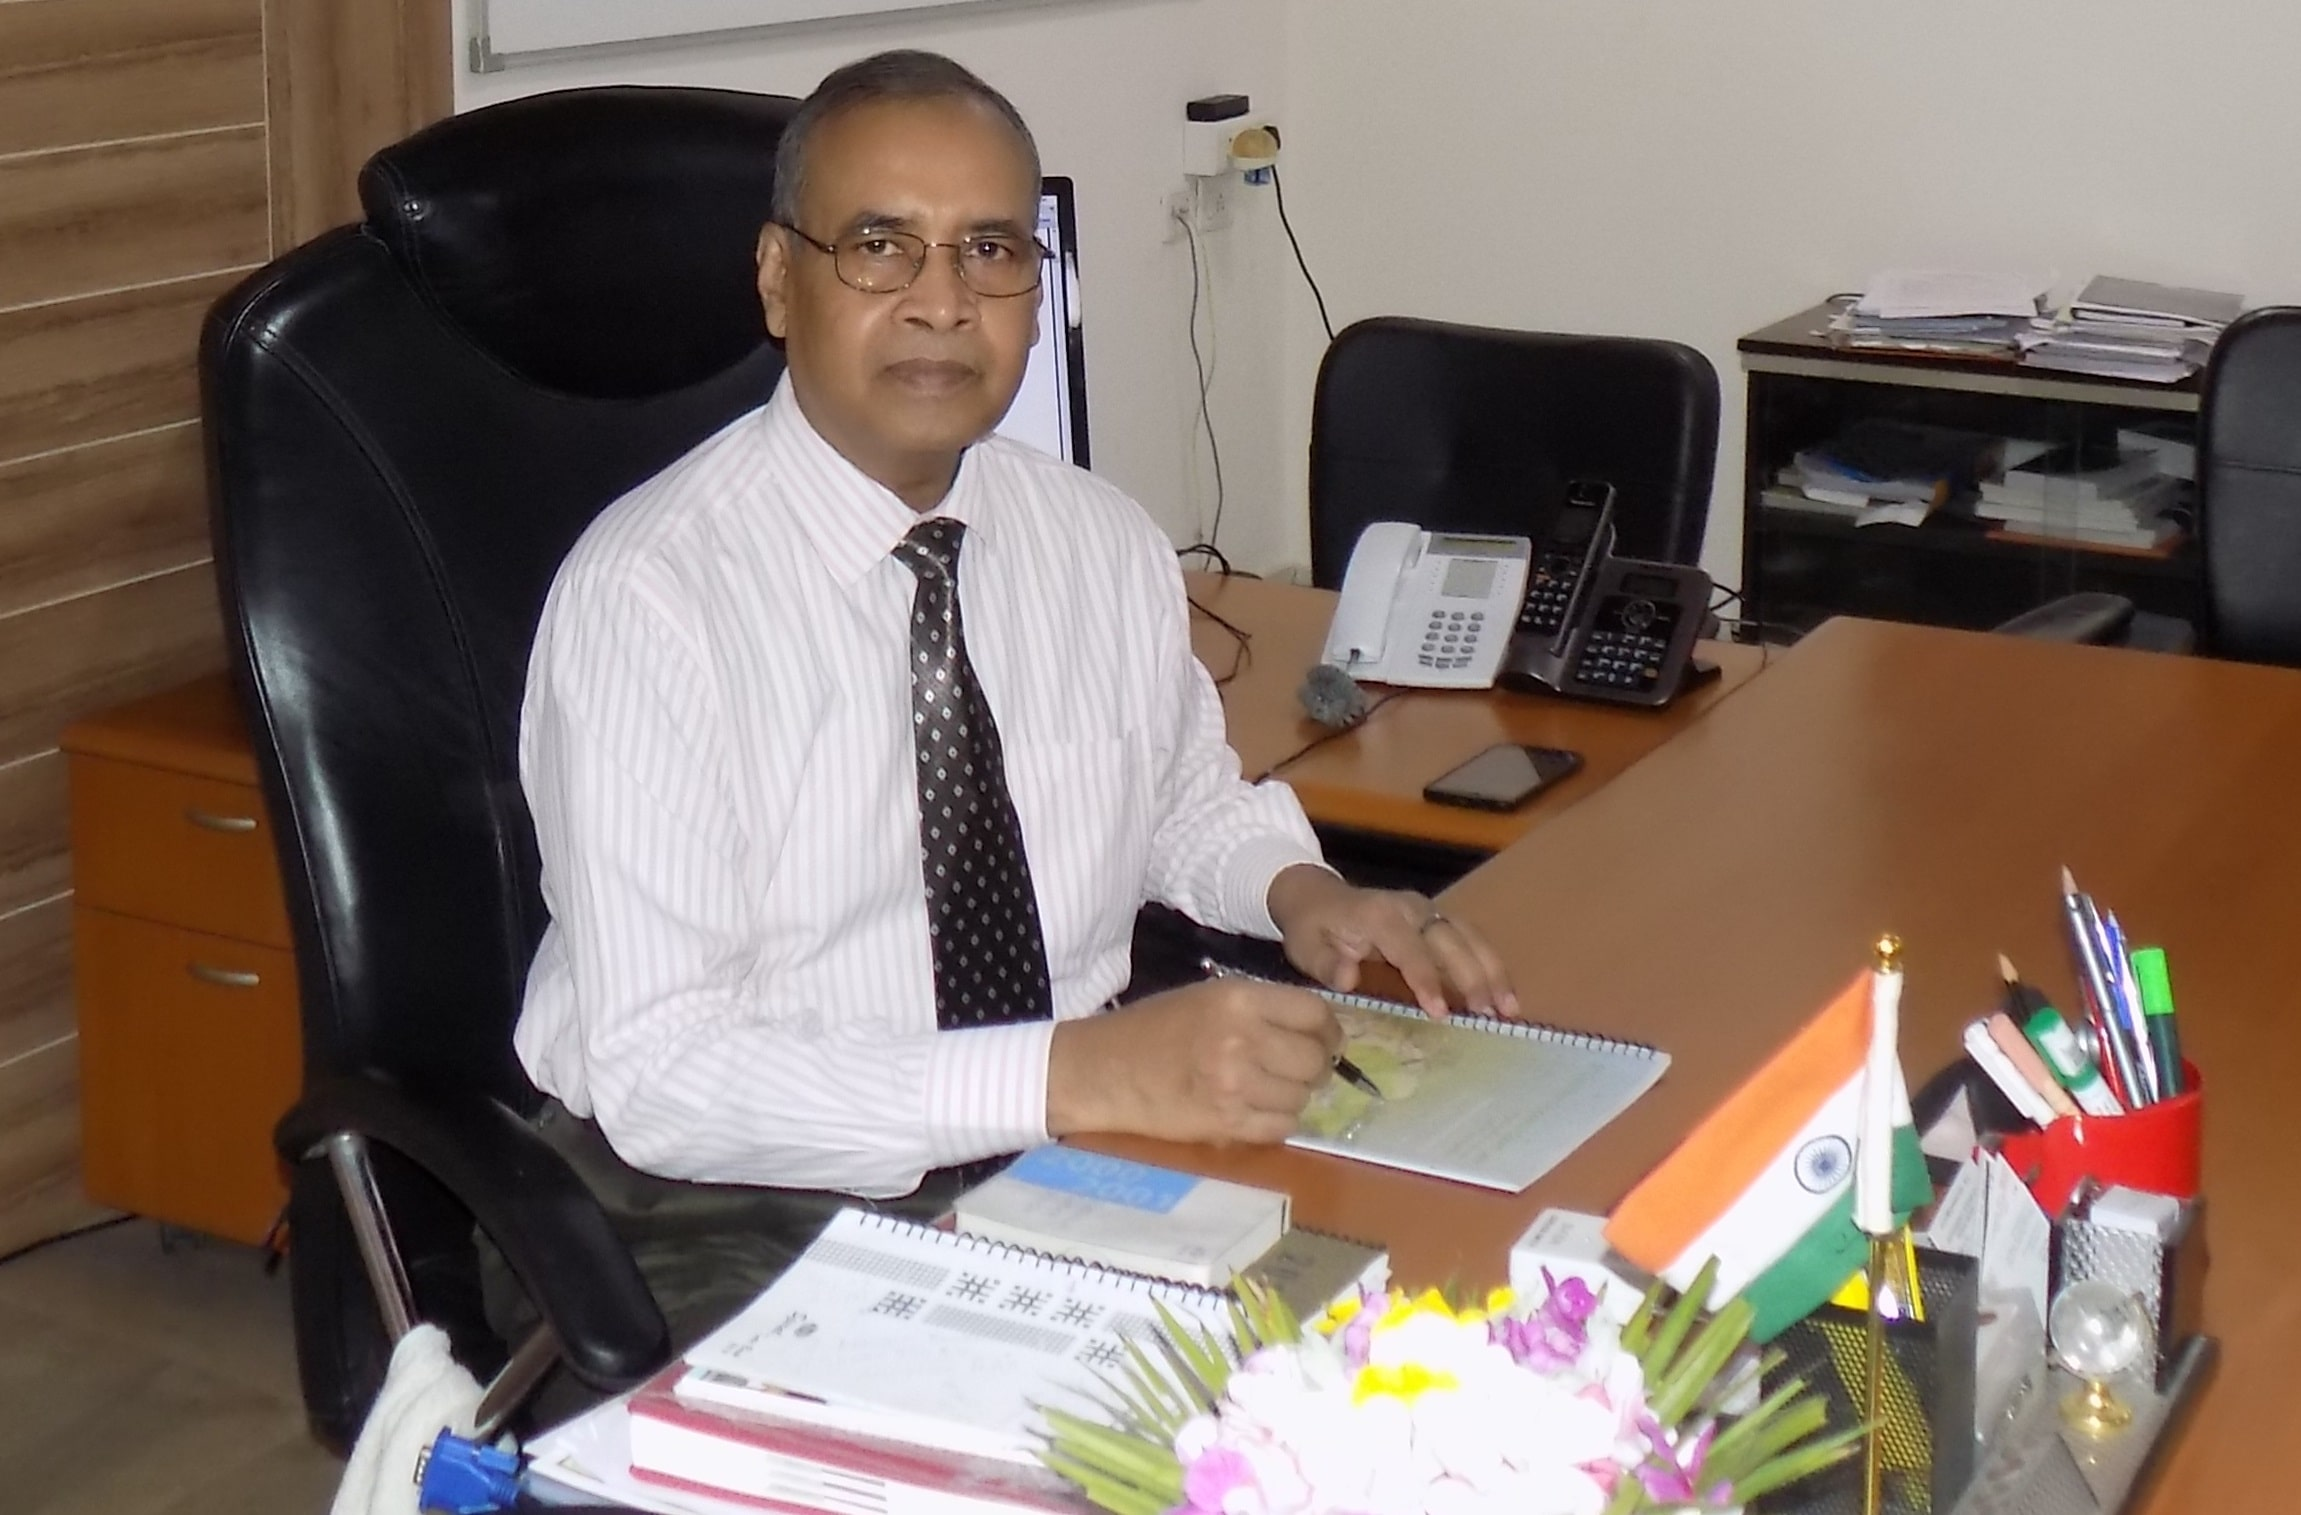 Dr. Kamalesh Sarkar, director and senior scientist at the Indian Council of Medical Research-National Institute of Occupational Health (ICMR-NIOH) Ahmedabad